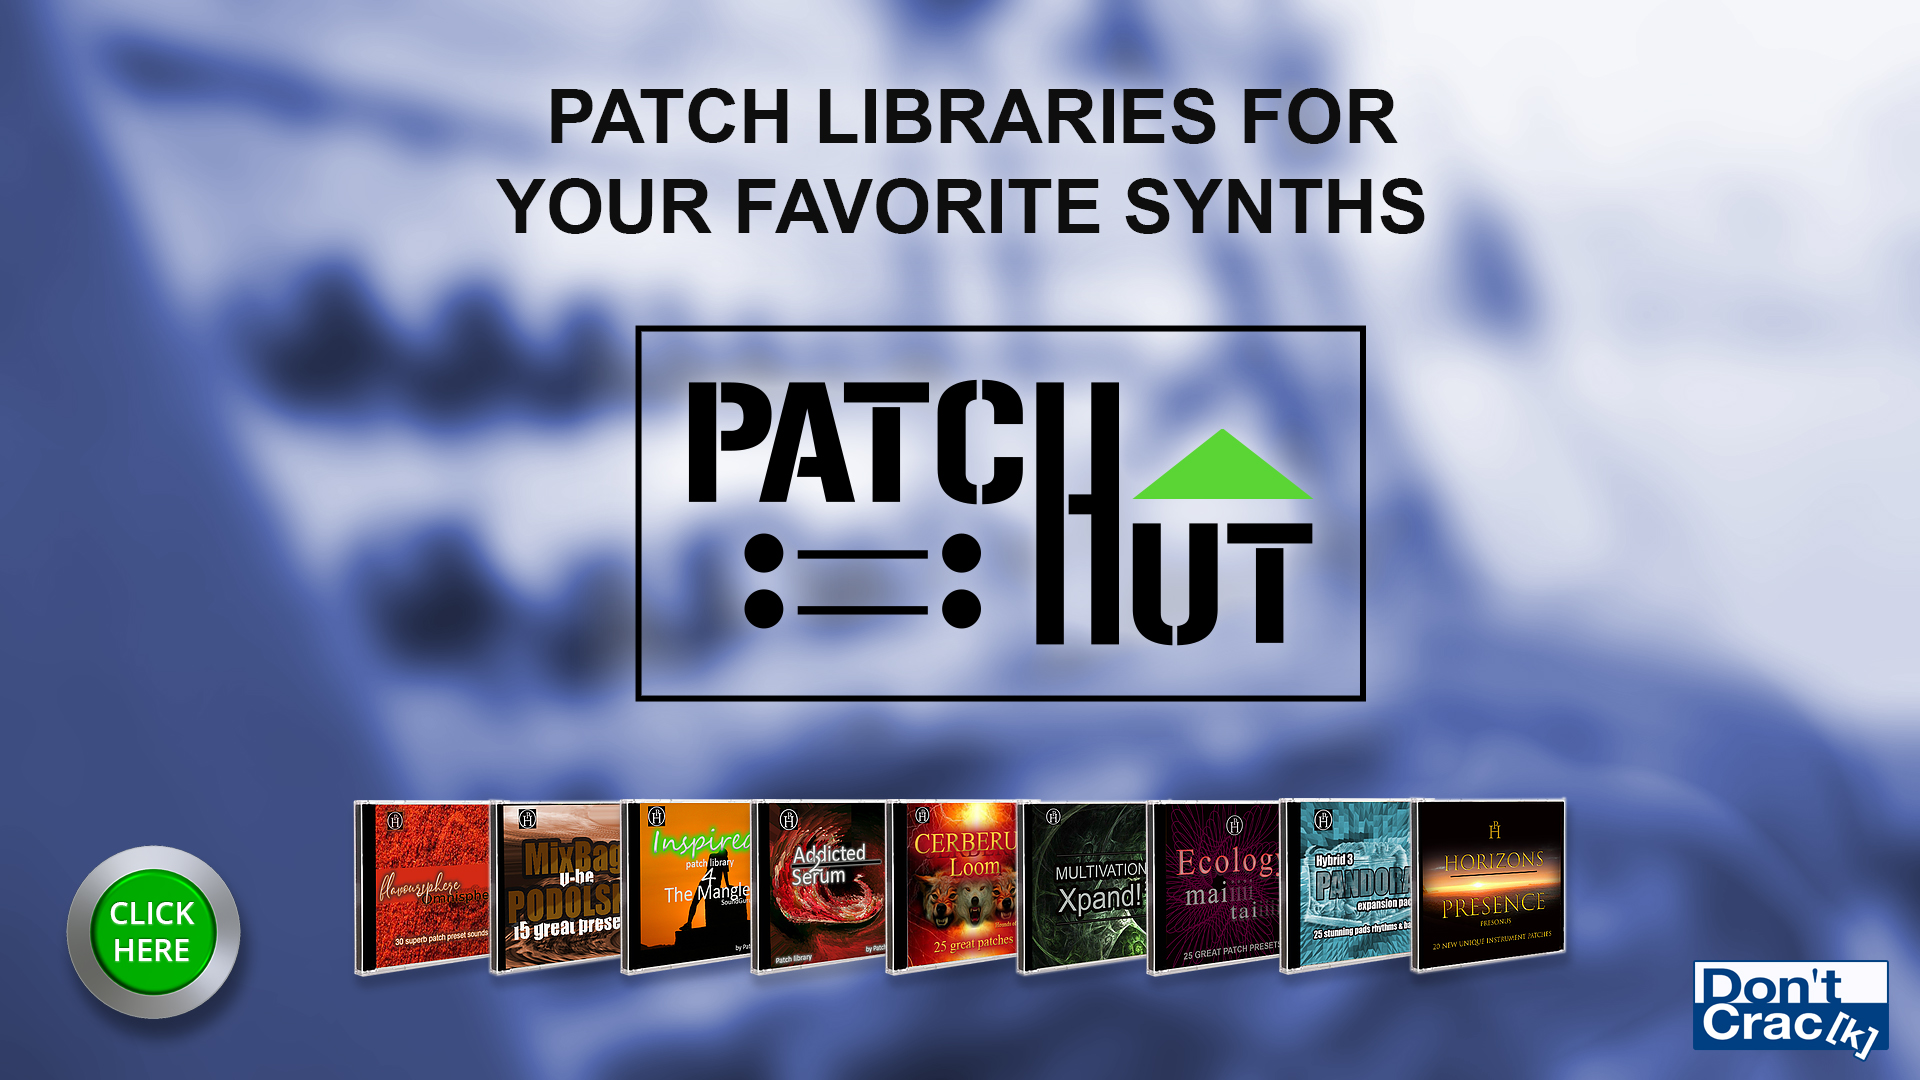 Patch Hut Sound & Preset Libraries